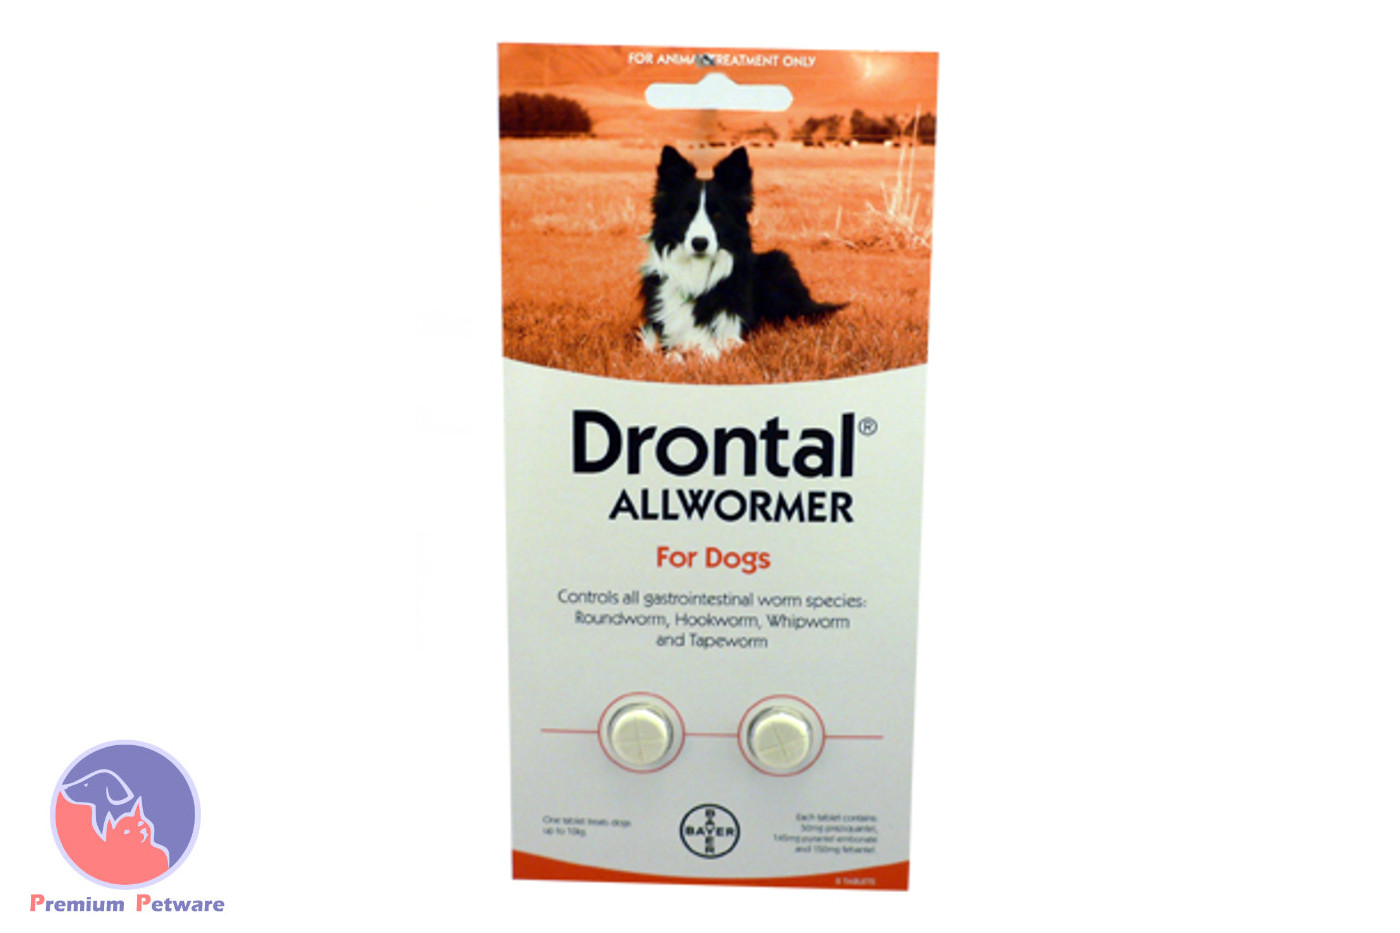 DRONTAL ALL WORMER FOR DOGS 10kg